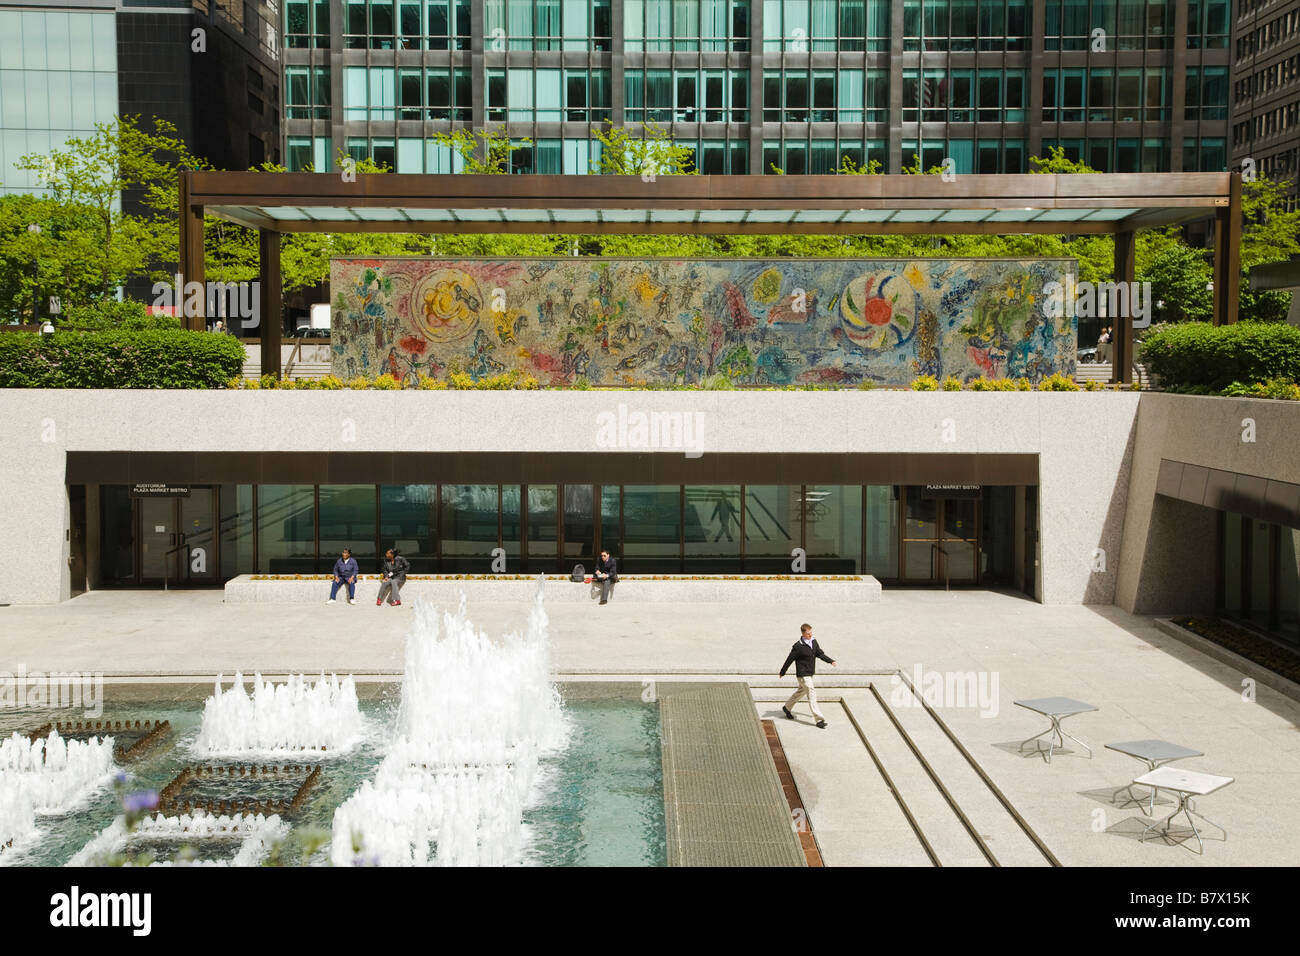 Illinois chicago four seasons mosaic mural by marc chagall for 4 seasons mural